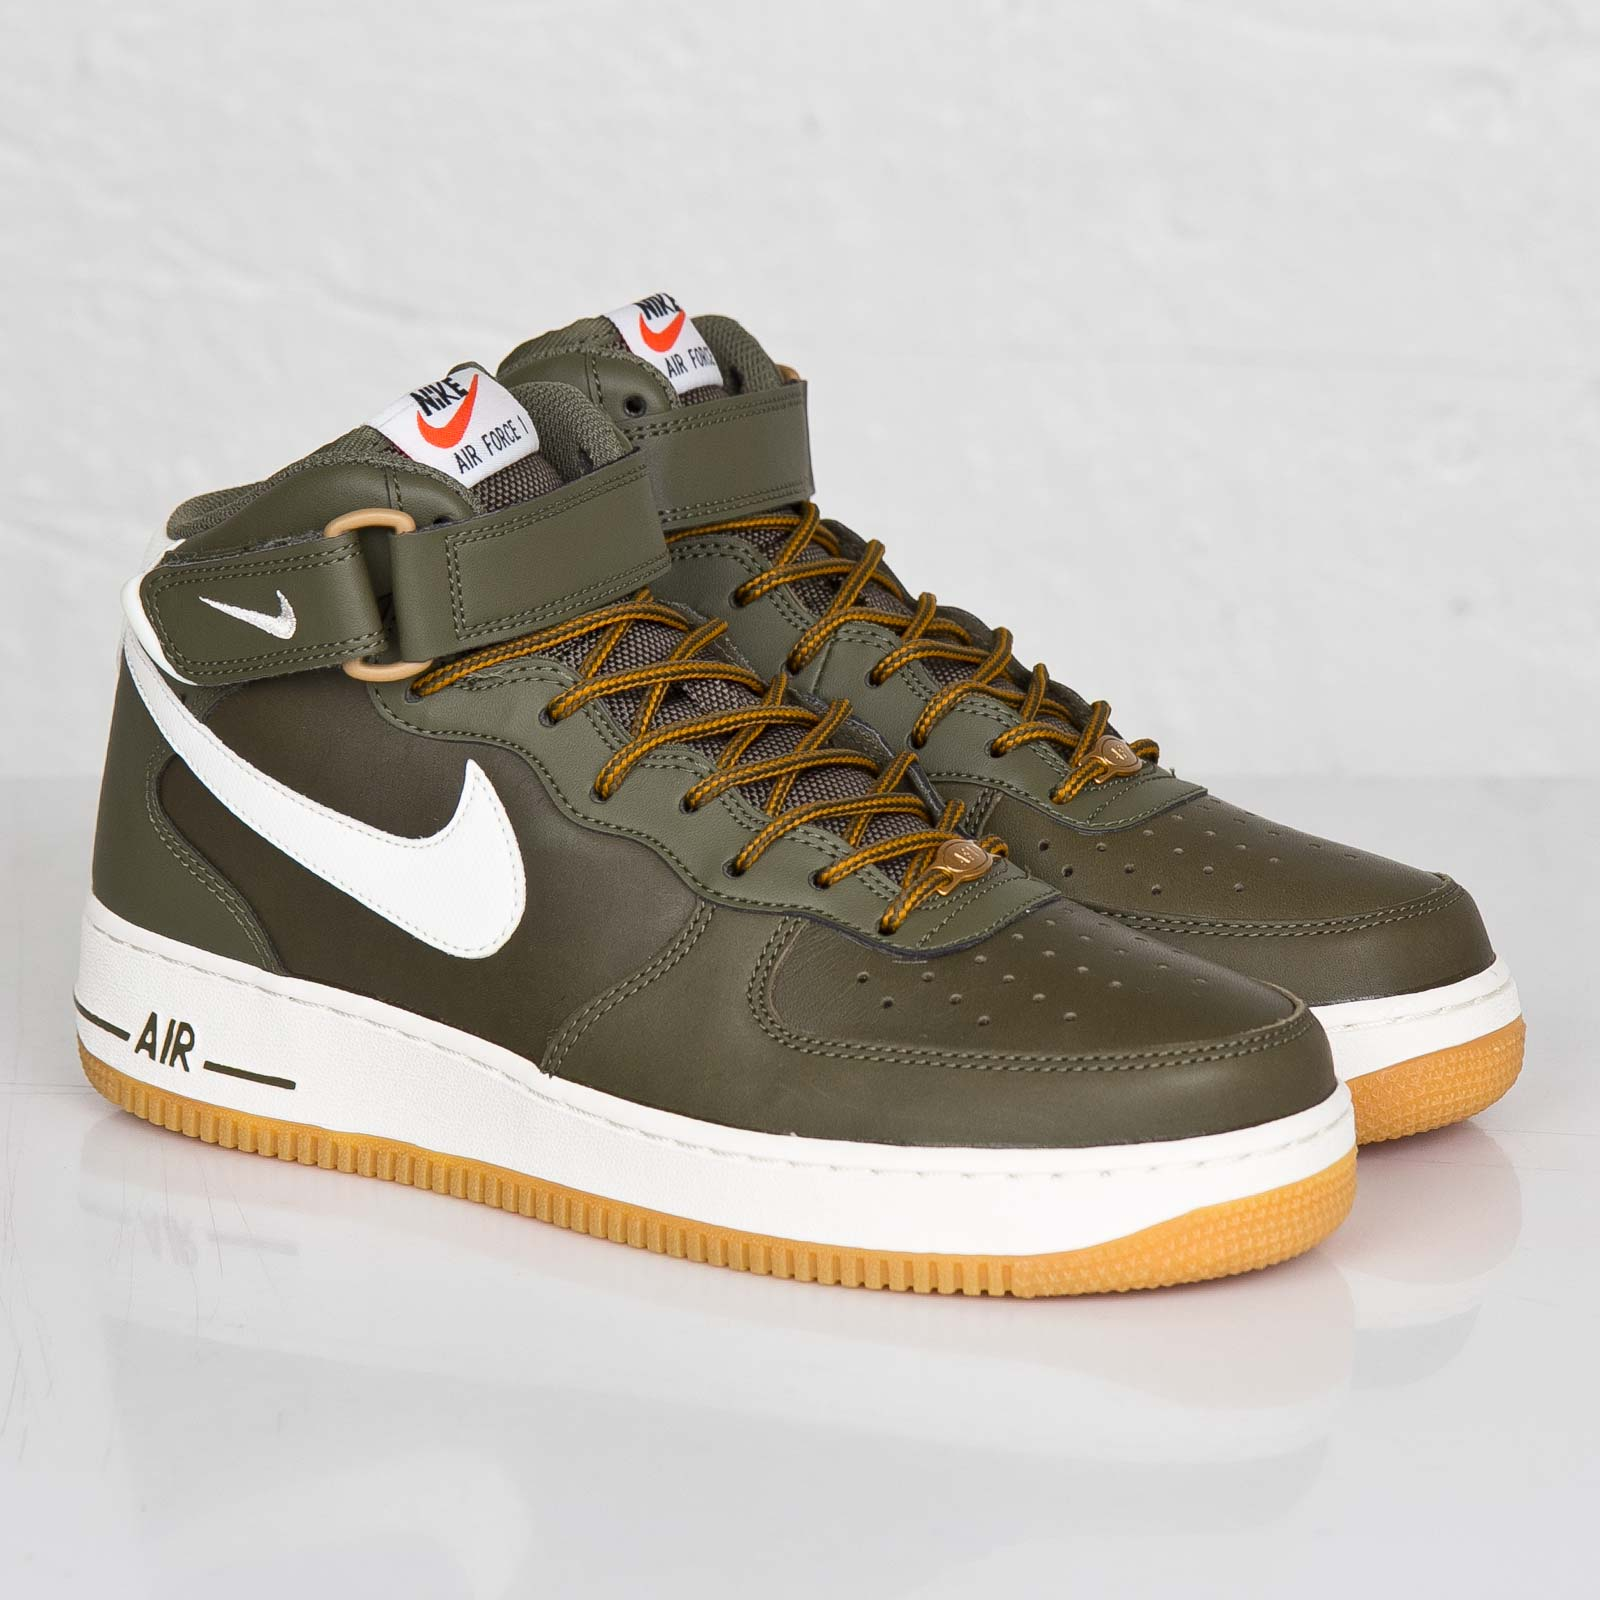 timeless design 18a4a 155c9 Nike Air Force 1 Mid 07